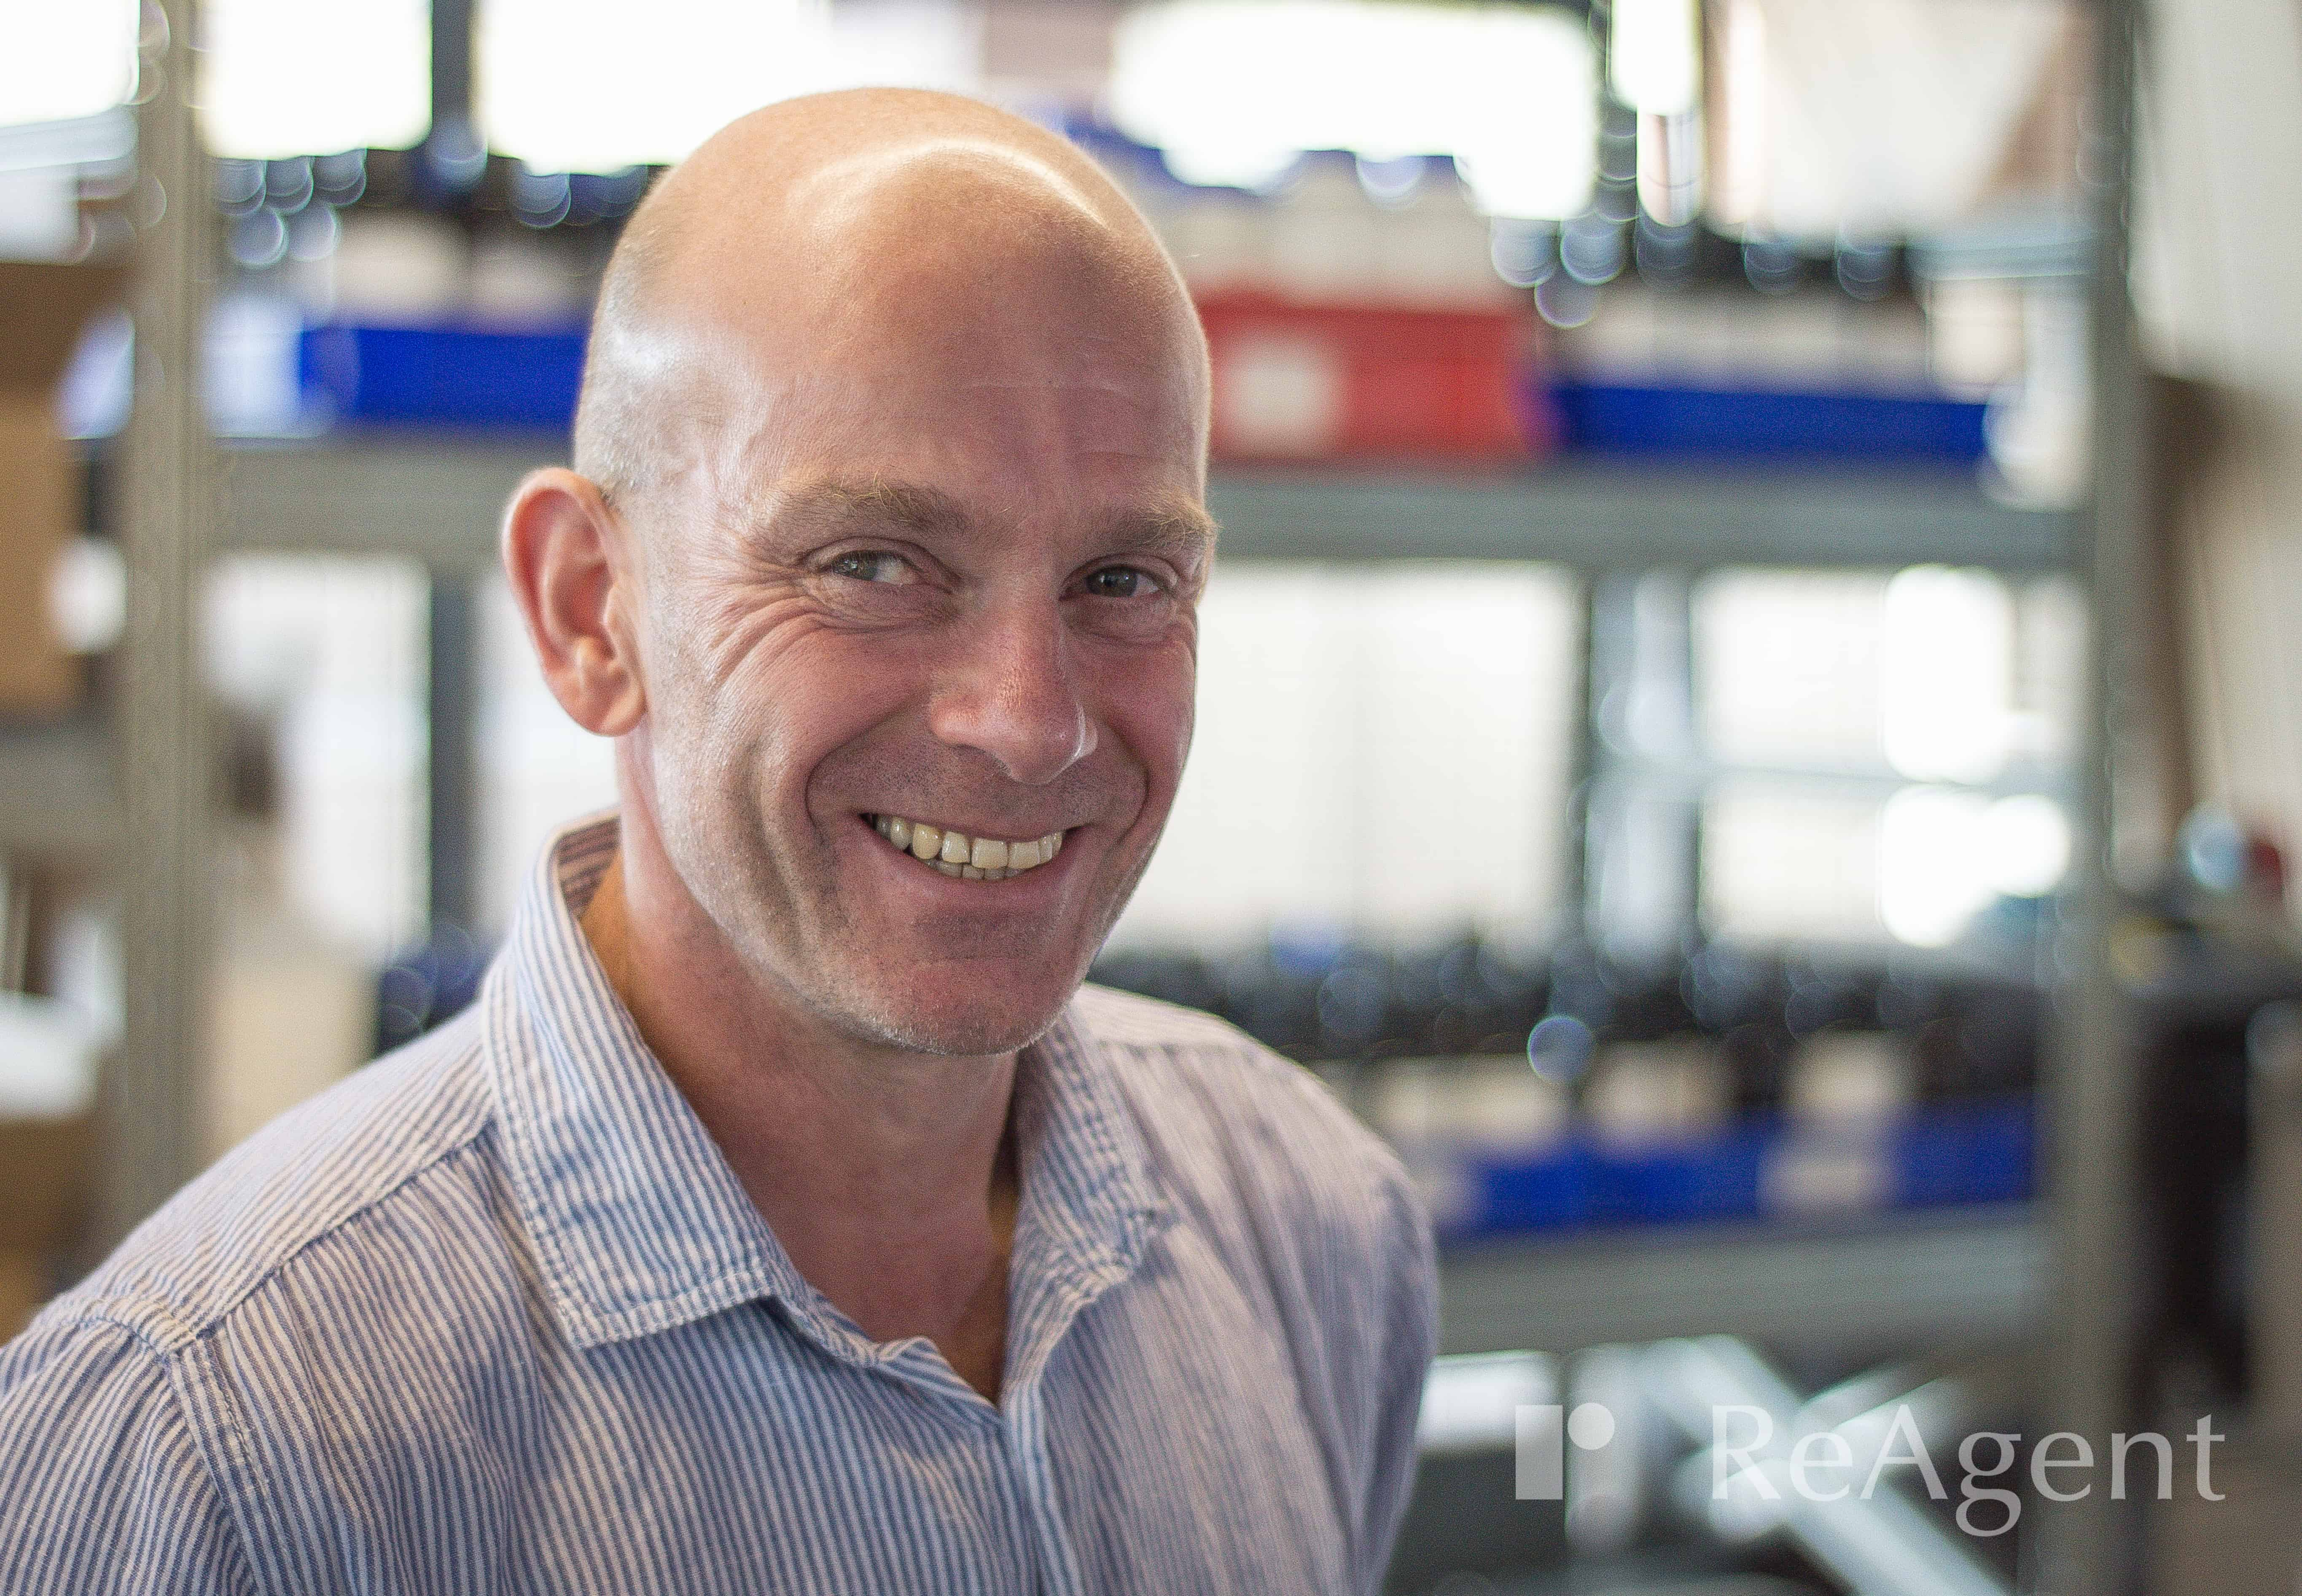 Head shot of Graham Bayliss, ReAgent's Systems Manager